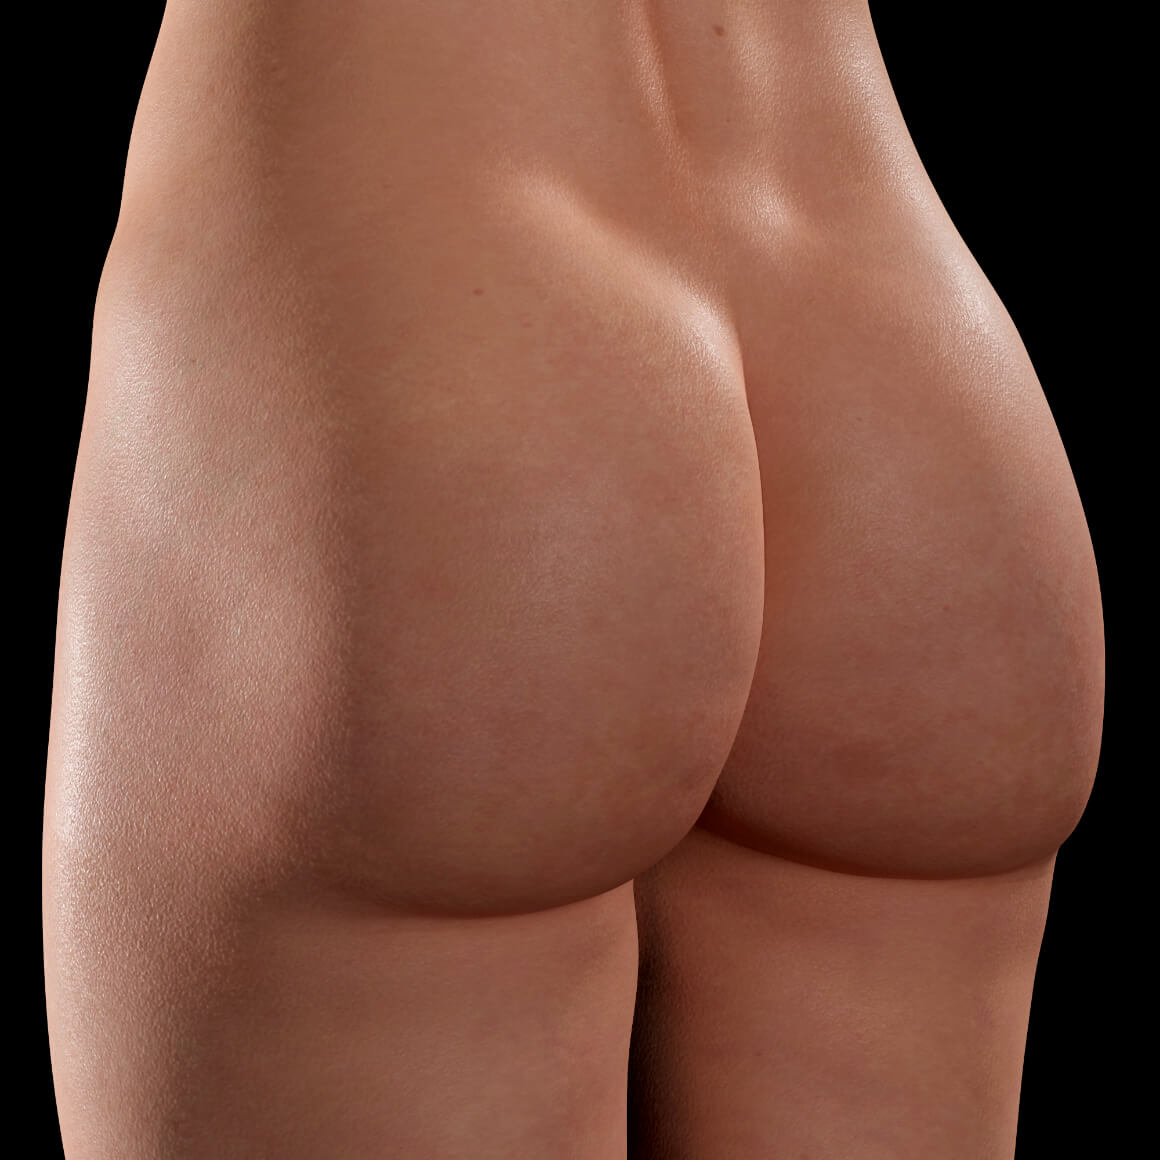 A female patient at Clinique Chloé positioned at an angle after Sculptra injections in the buttocks for cellulite treatment